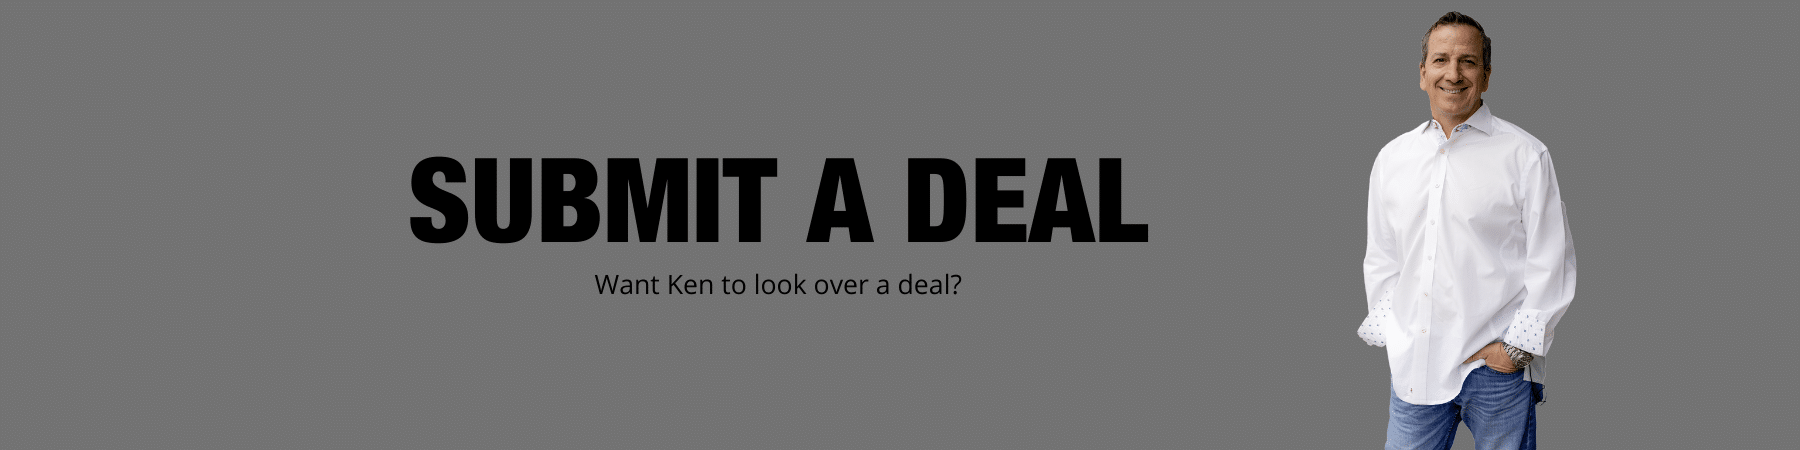 submit a deal to have ken mcelroy look over | Ken McElroy Image